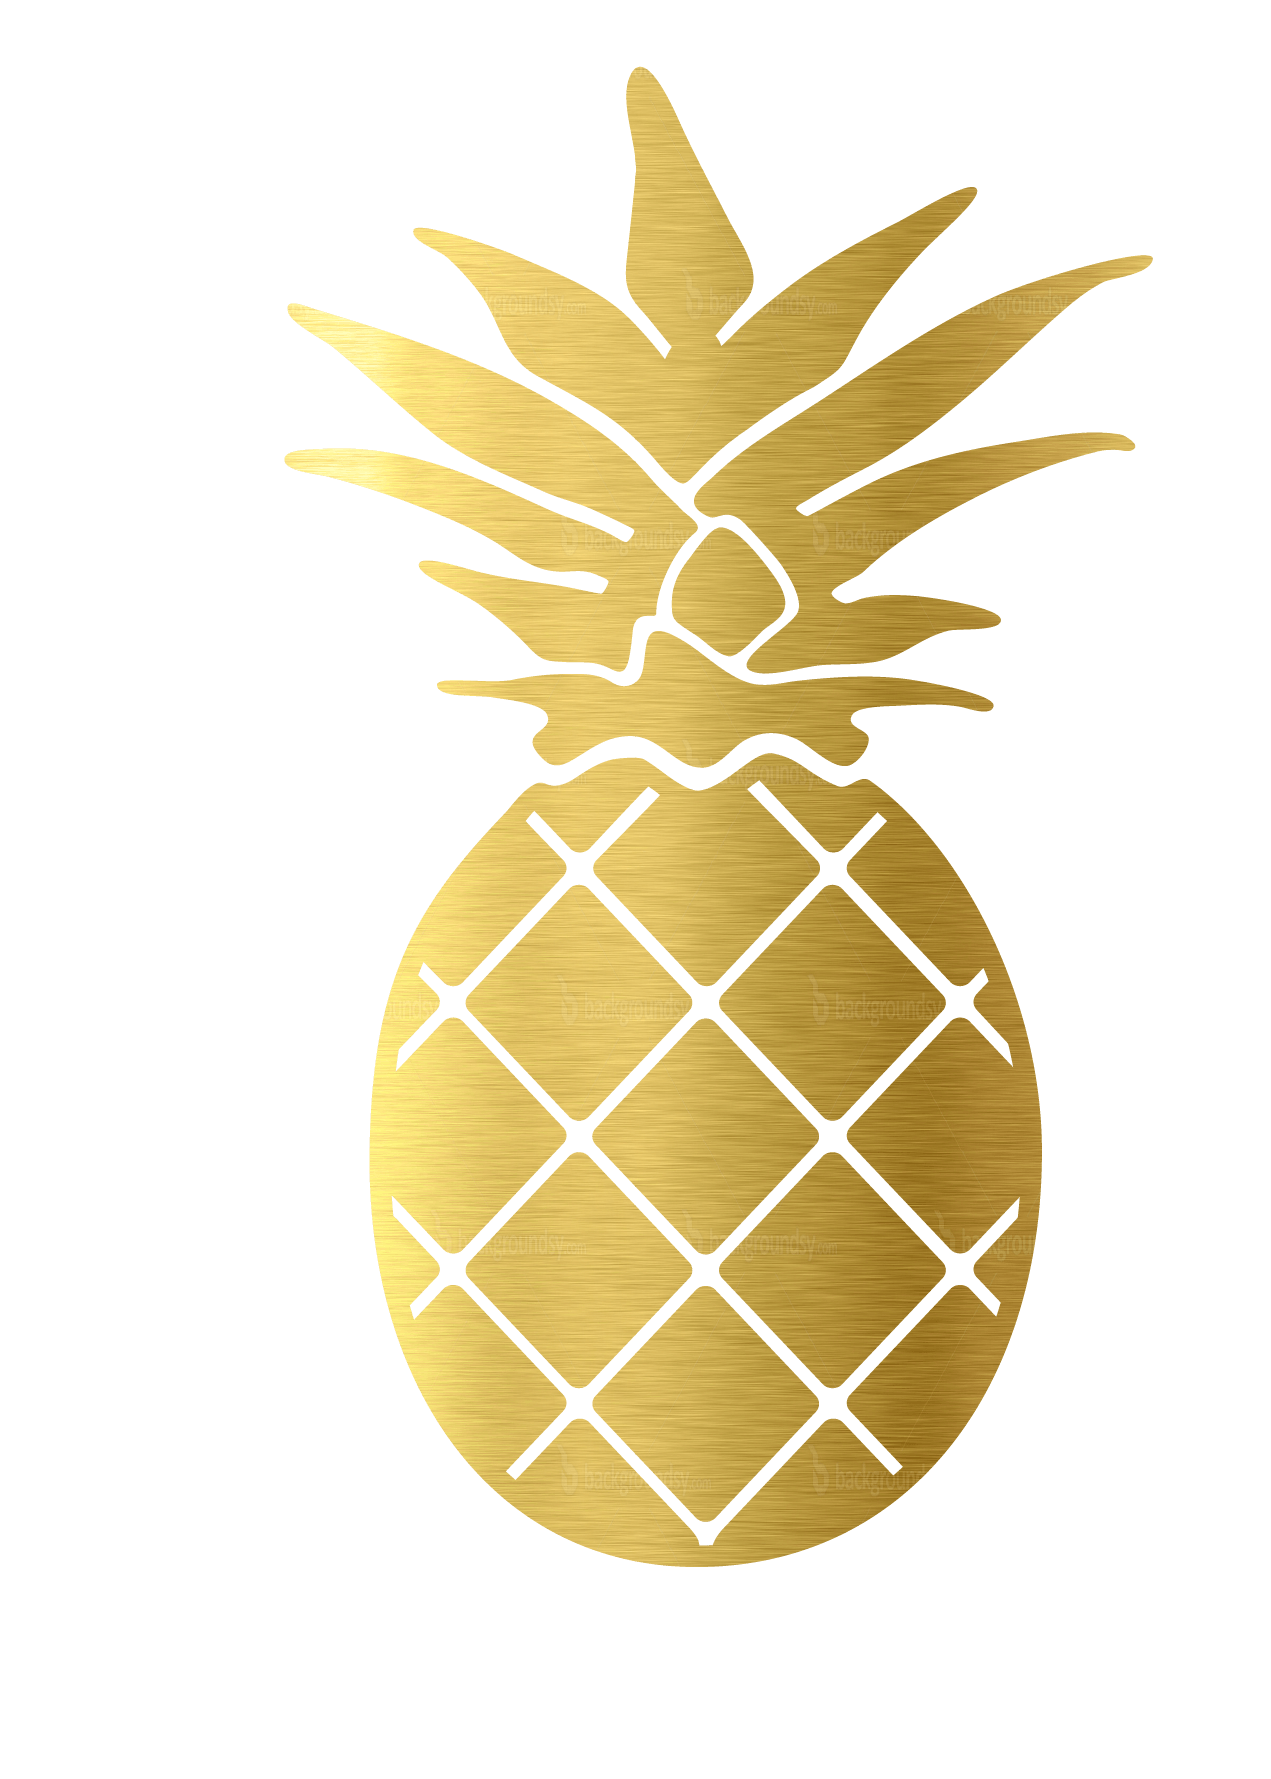 Pineapple clipart crown vector transparent Decals & Stickers - Palmetto Moon vector transparent